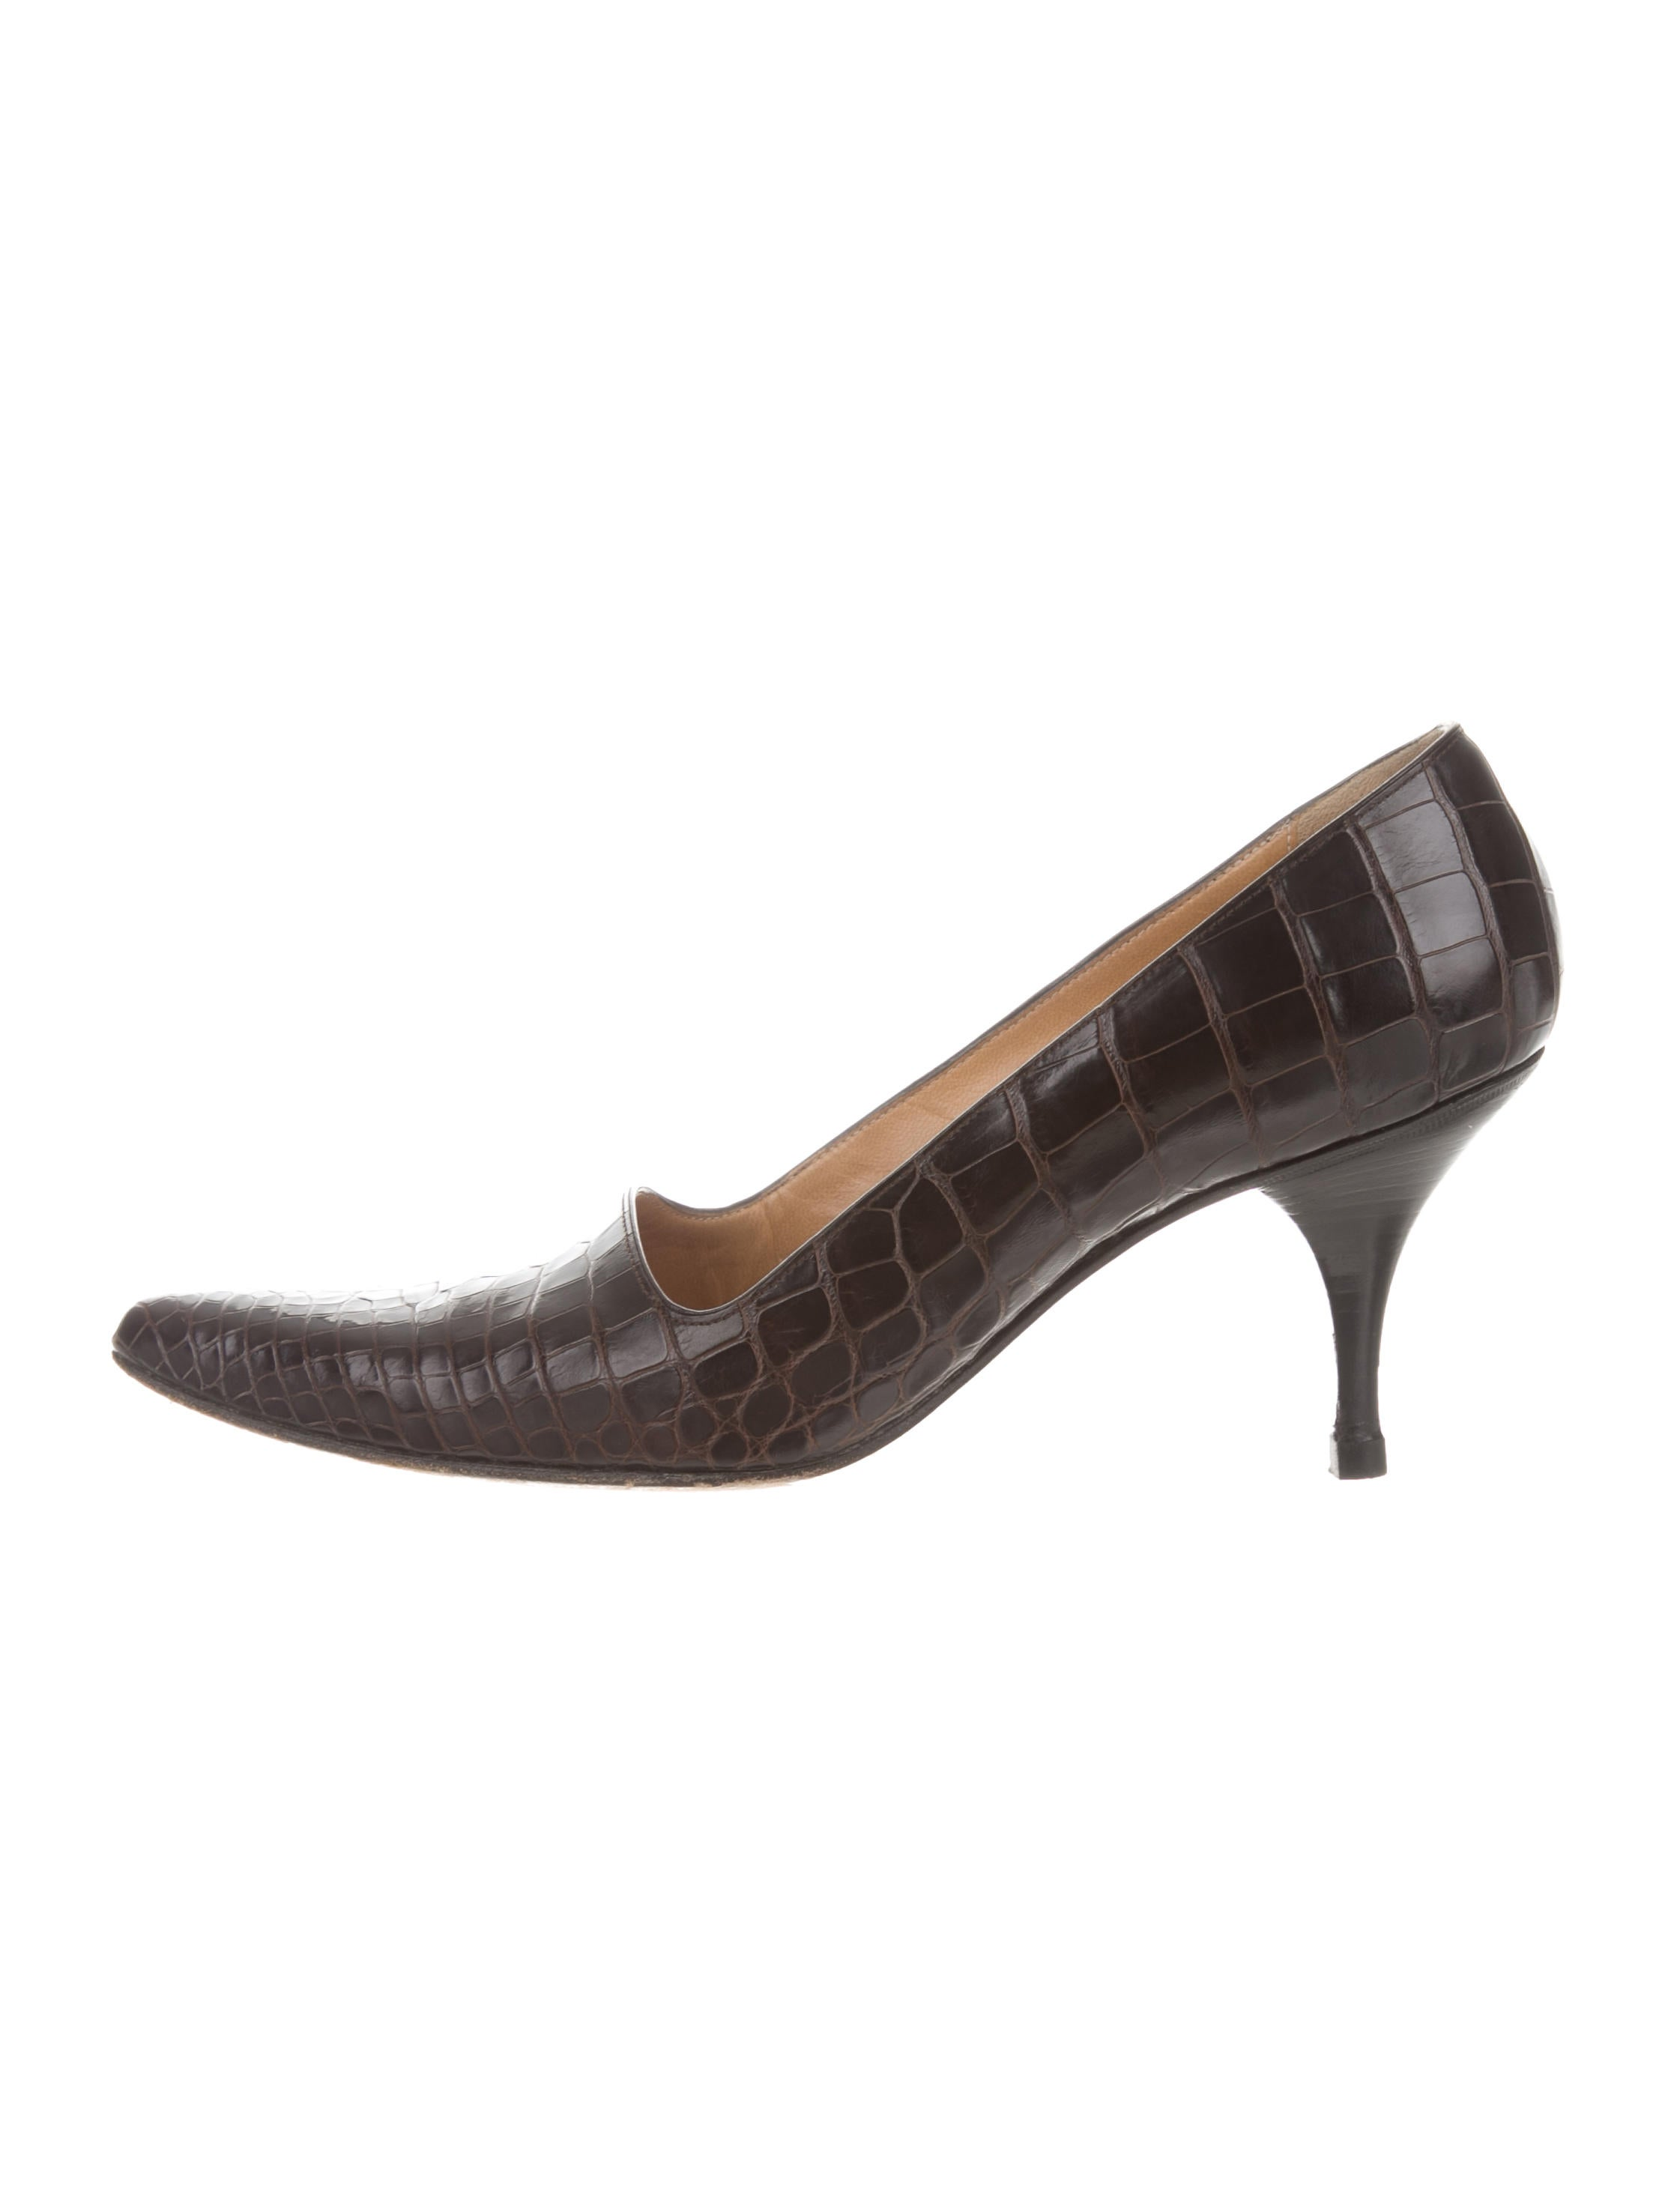 sale many kinds of Hermès Alligator Pointed-Toe Pumps shopping online sale online buy cheap factory outlet eastbay cheap online u1wLp5